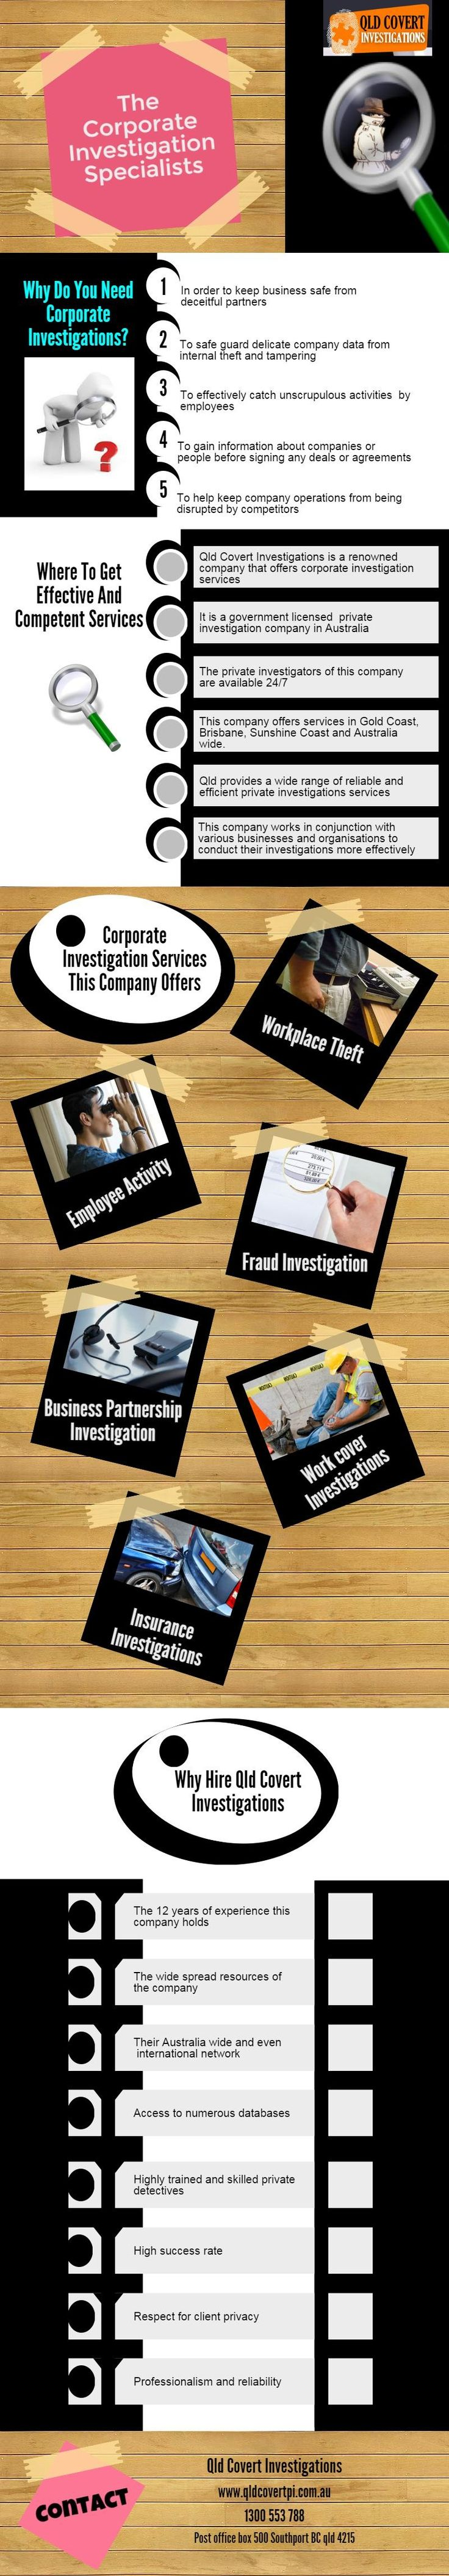 The Corporate Investigation specialists There are many aspects, where need of corporate investigations. In order to keep business safe from deceitful partners, safe guard delicate company data from internal theft and tampering, effectively catch unscrupulous activities by employees and more. Visit http://www.qldcovertpi.com.au/corporate-services for Corporate Investigation Services Australia.